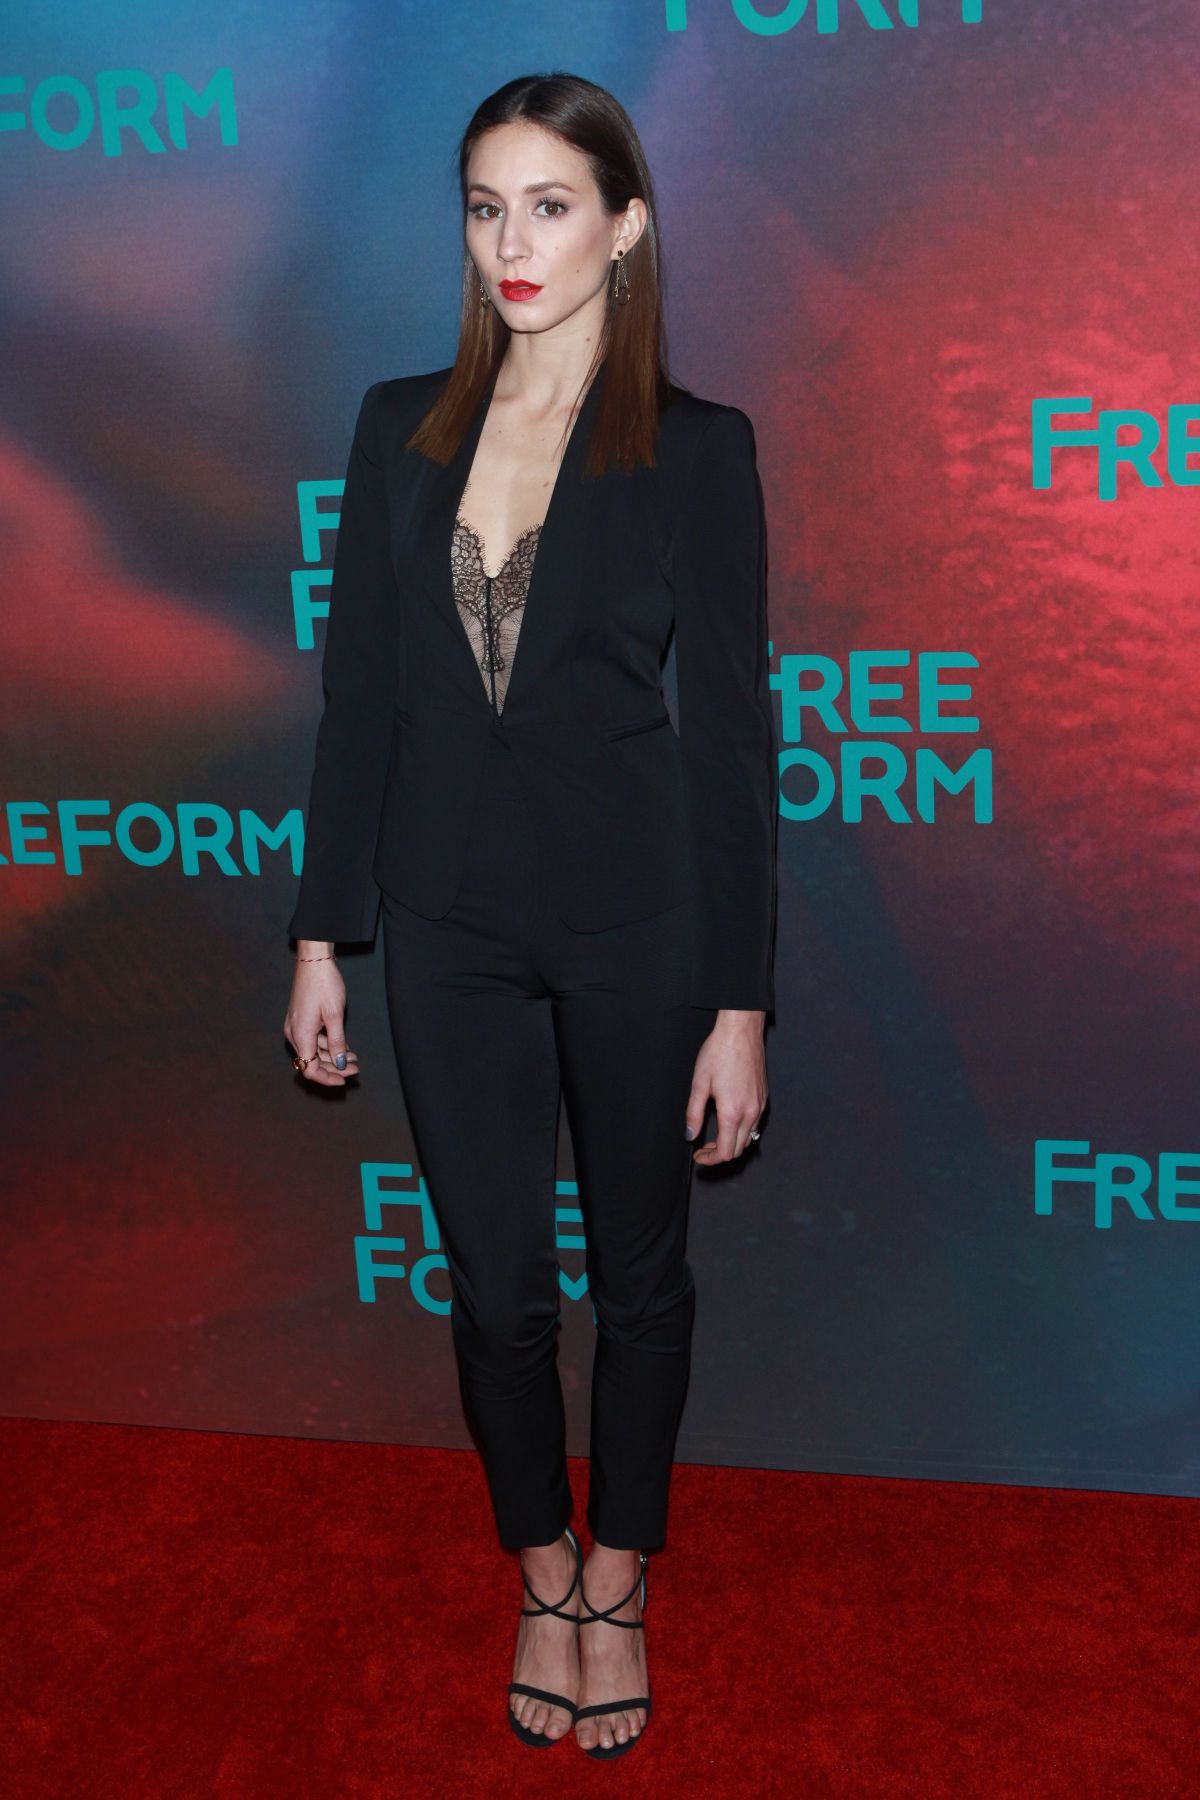 Troian Bellisario At 2017 Freeform Upfront in NYC   troian-bellisario-at-2017-freeform-upfront-in-nyc_14